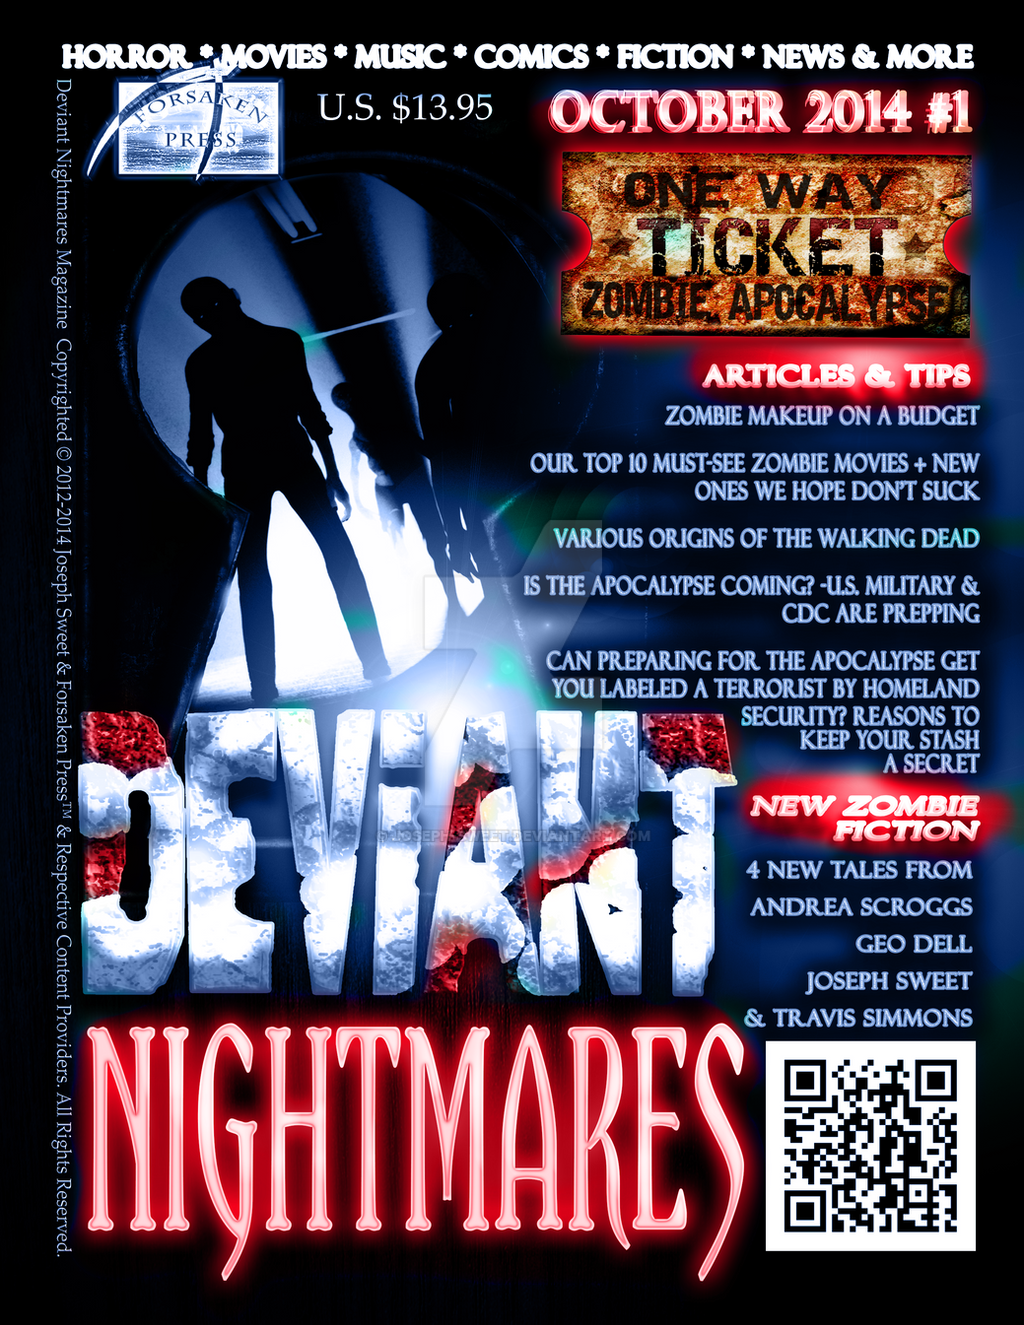 Deviant Nightmares # 1 Cover 001 by joseph-sweet